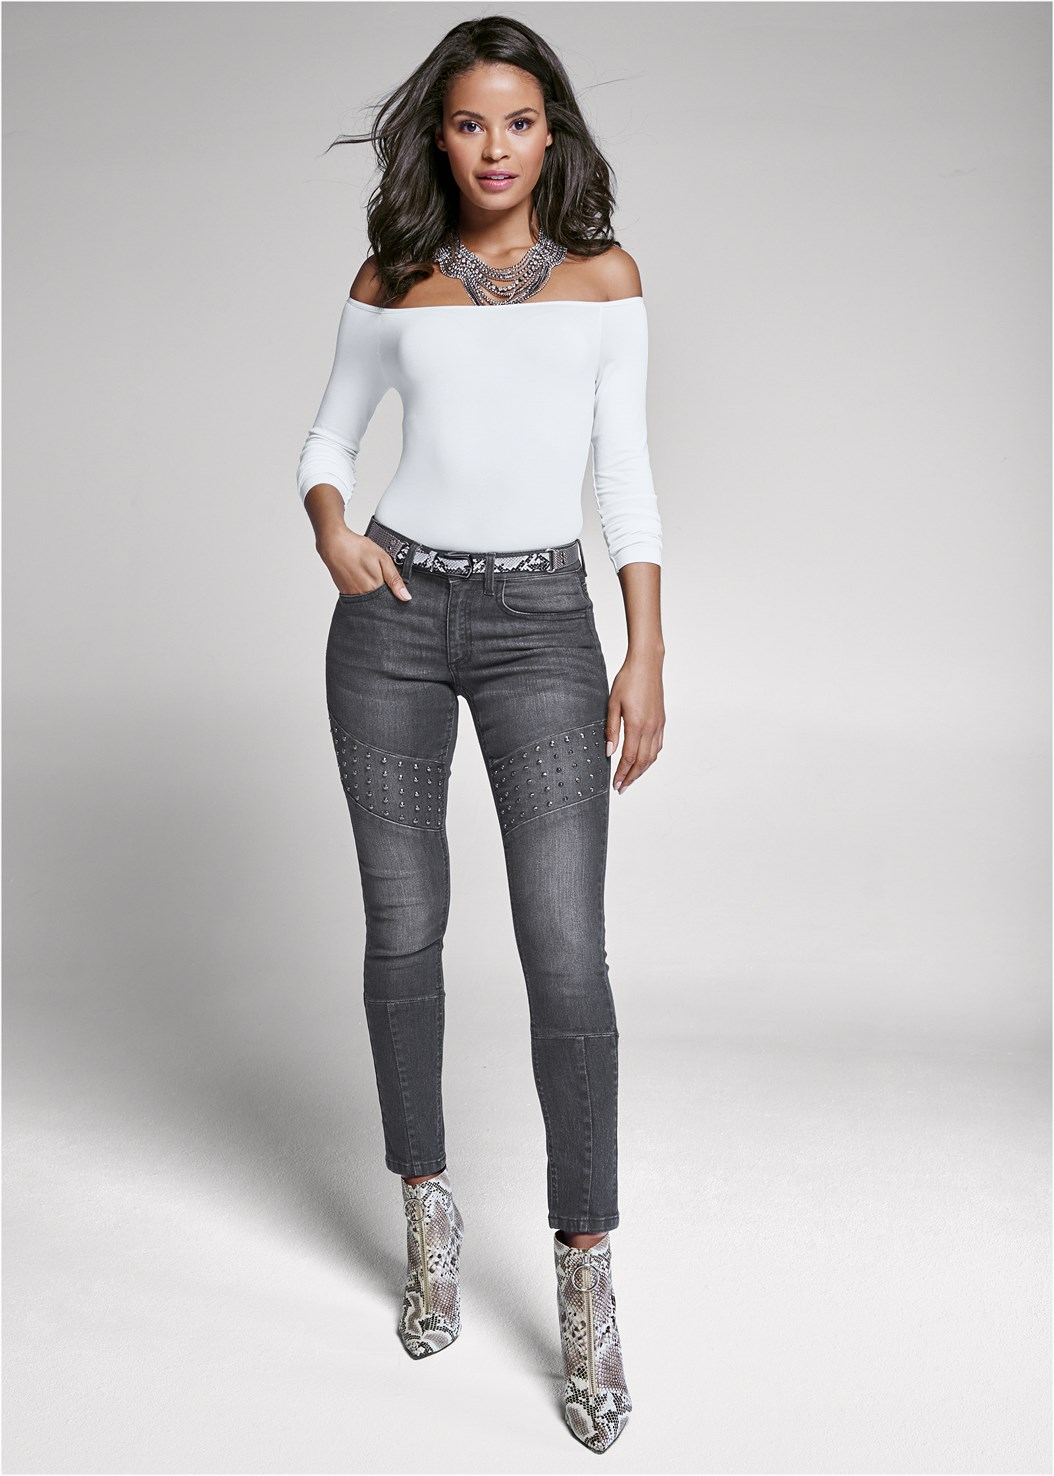 Stud Detail Skinny Jeans,Off The Shoulder Top,Strapless Bra With Geo Lace,Animal Print Mesh Belt